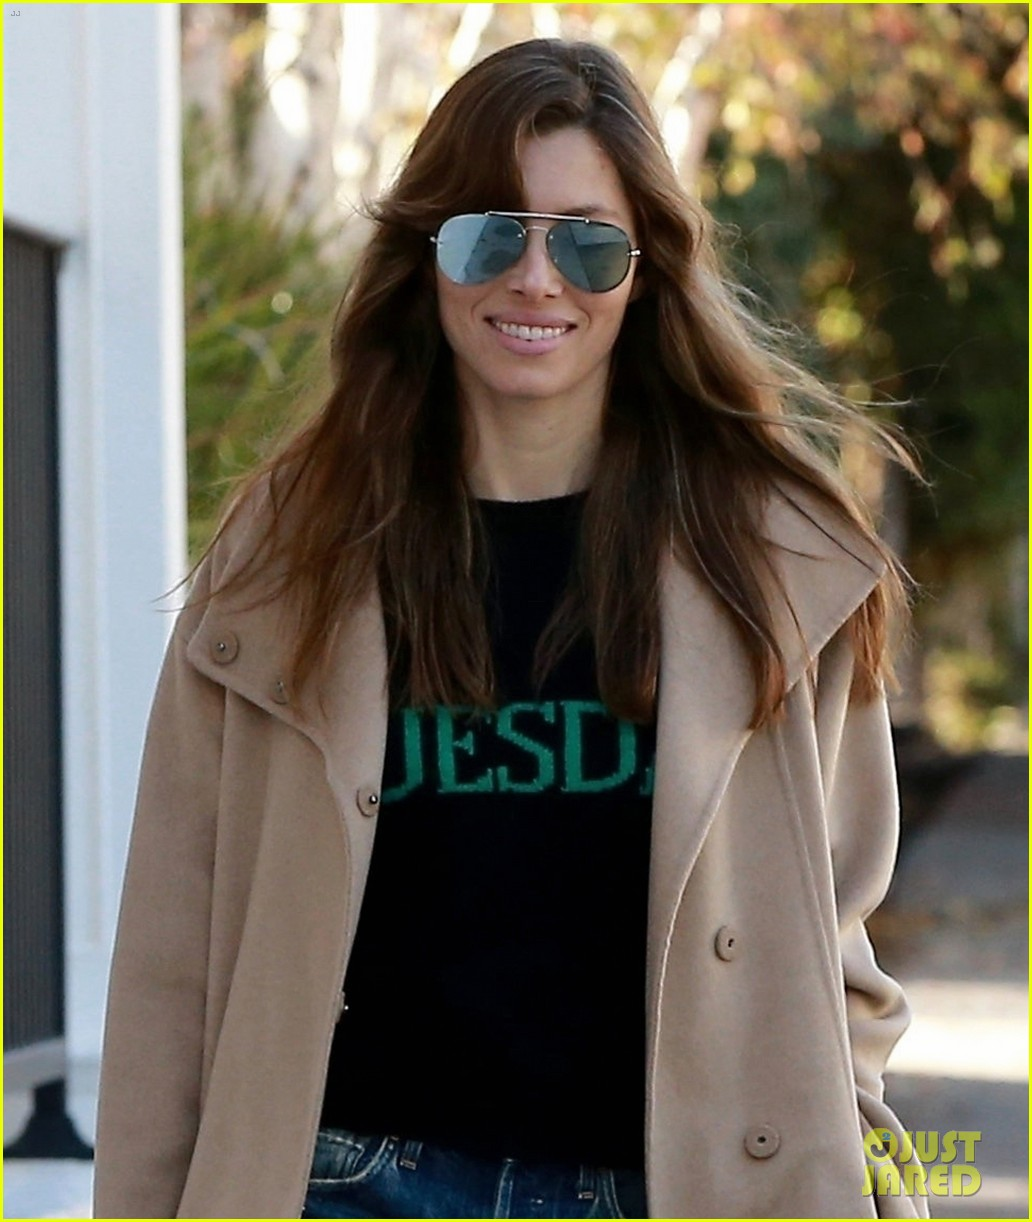 jessica biel wears a tuesday sweater as her wednesday outfit 044012270